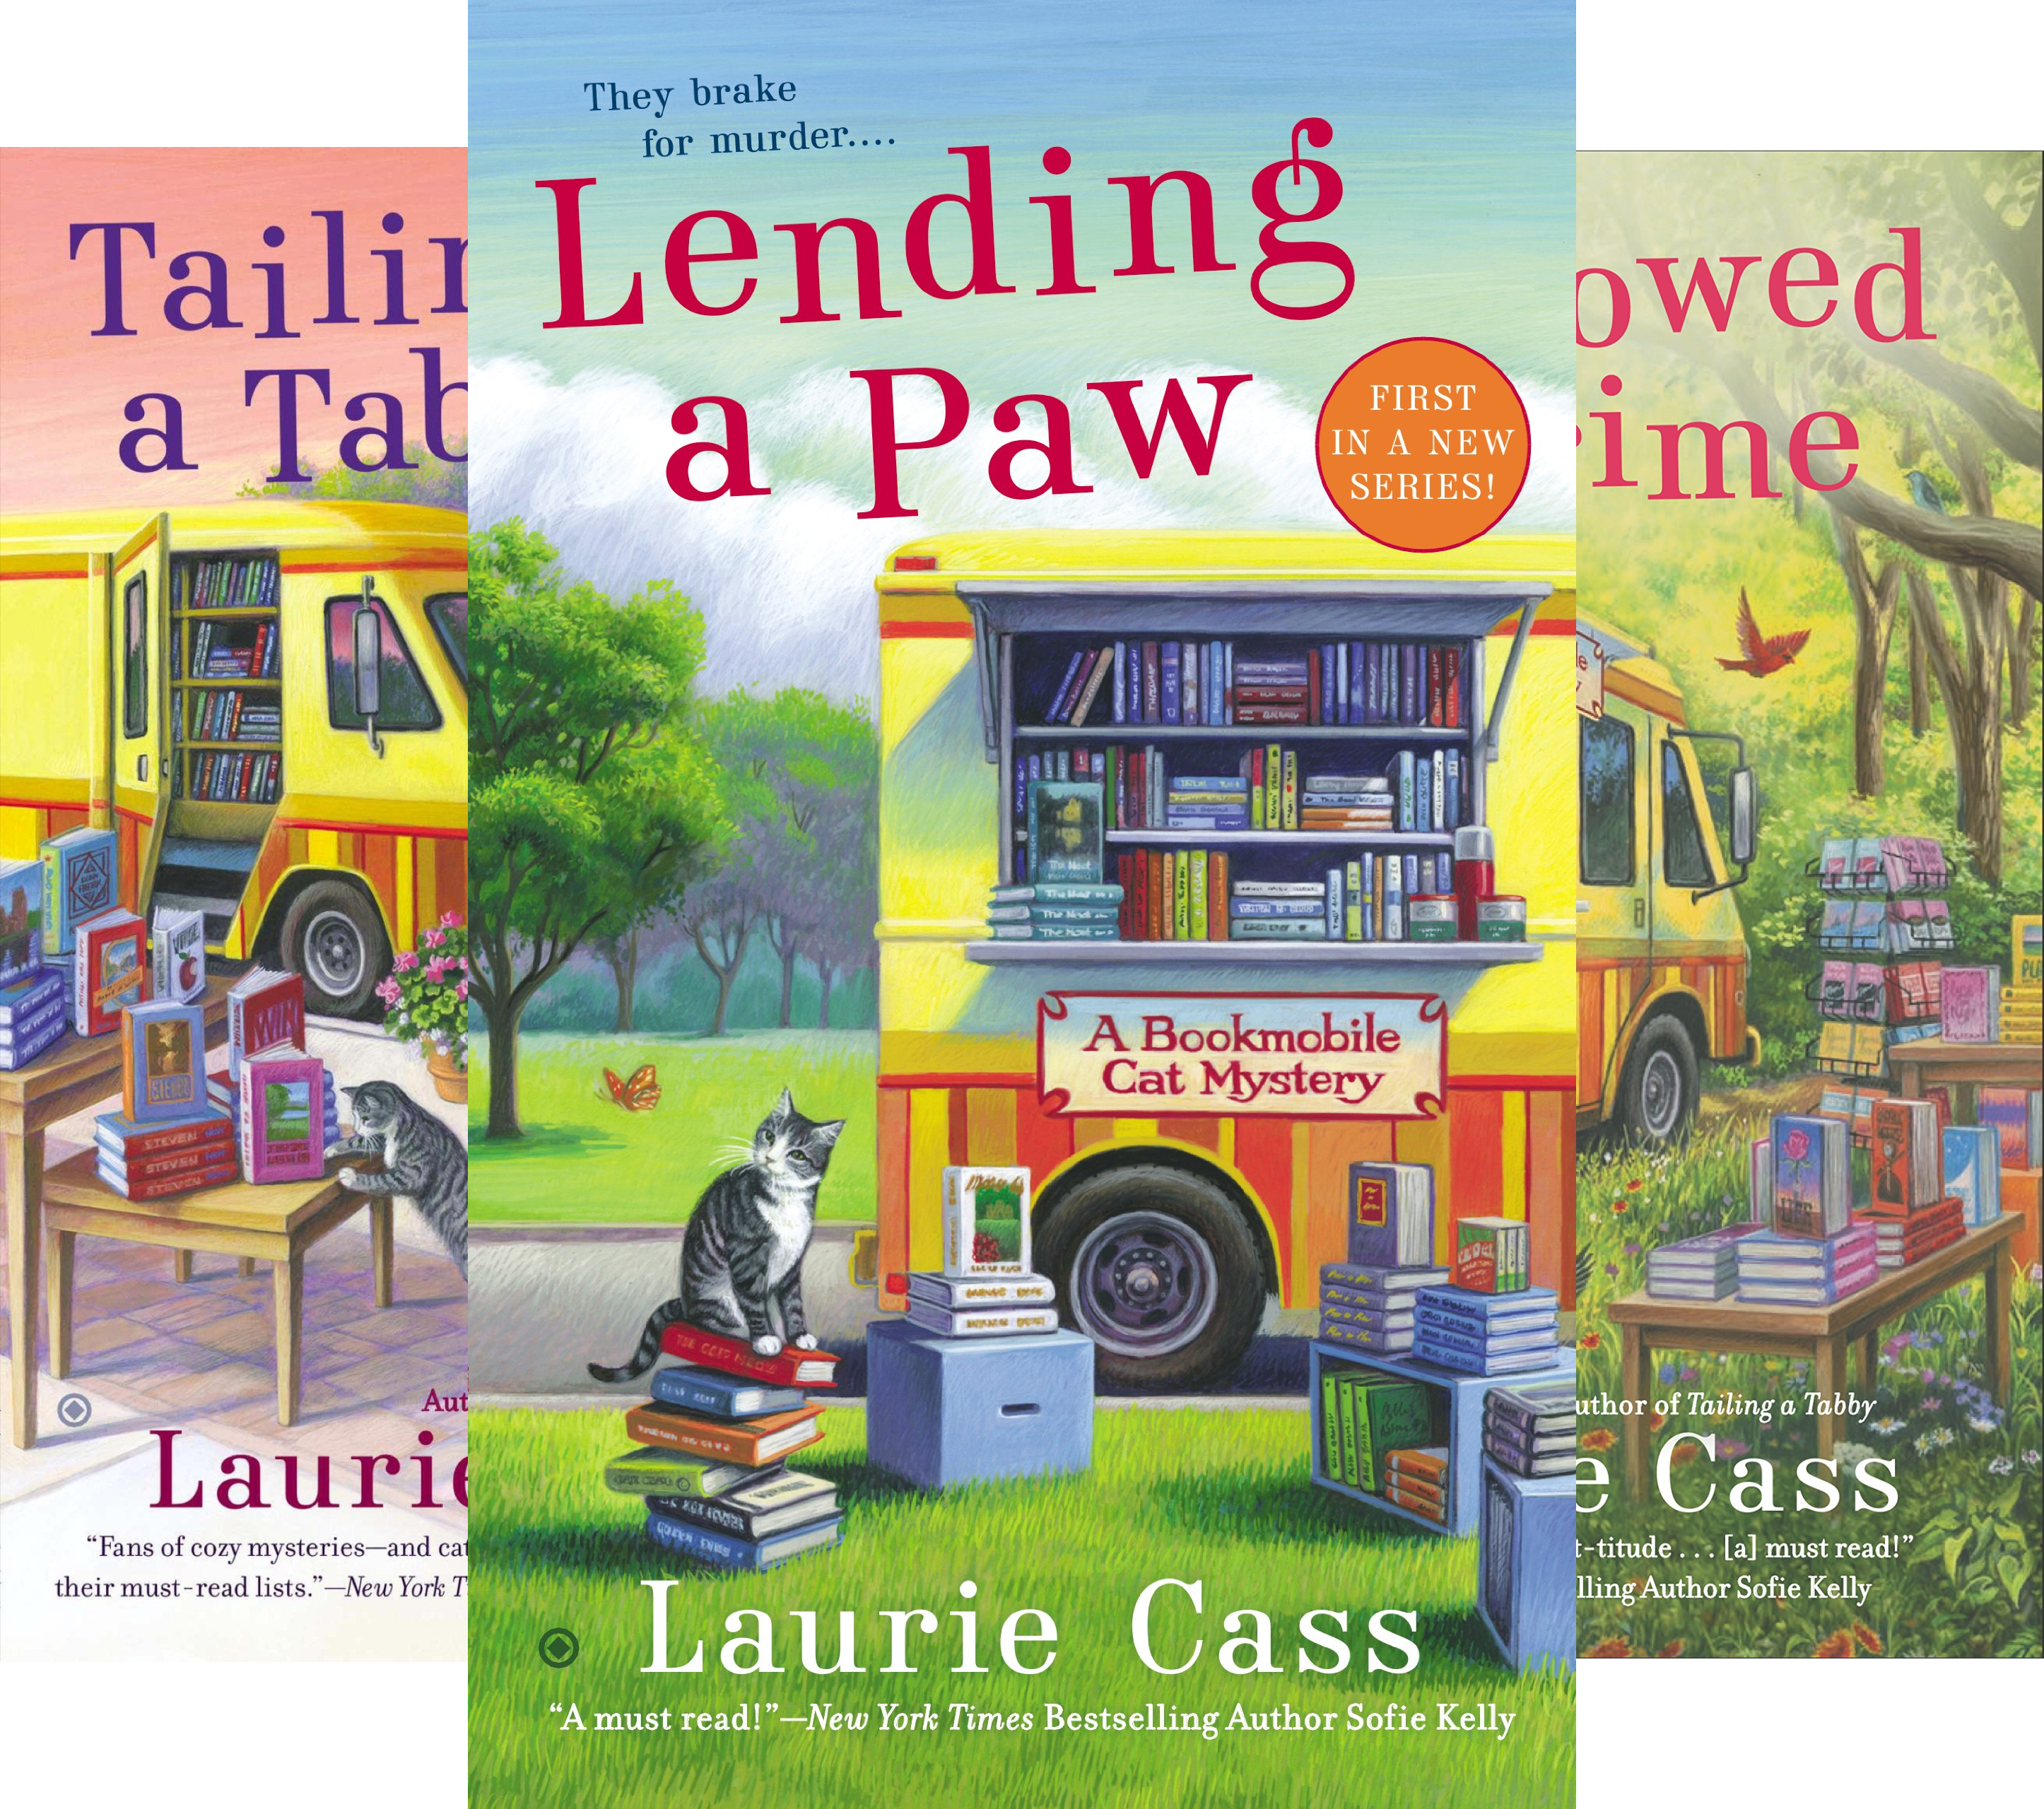 A Bookmobile Cat Mystery (7 Book Series)